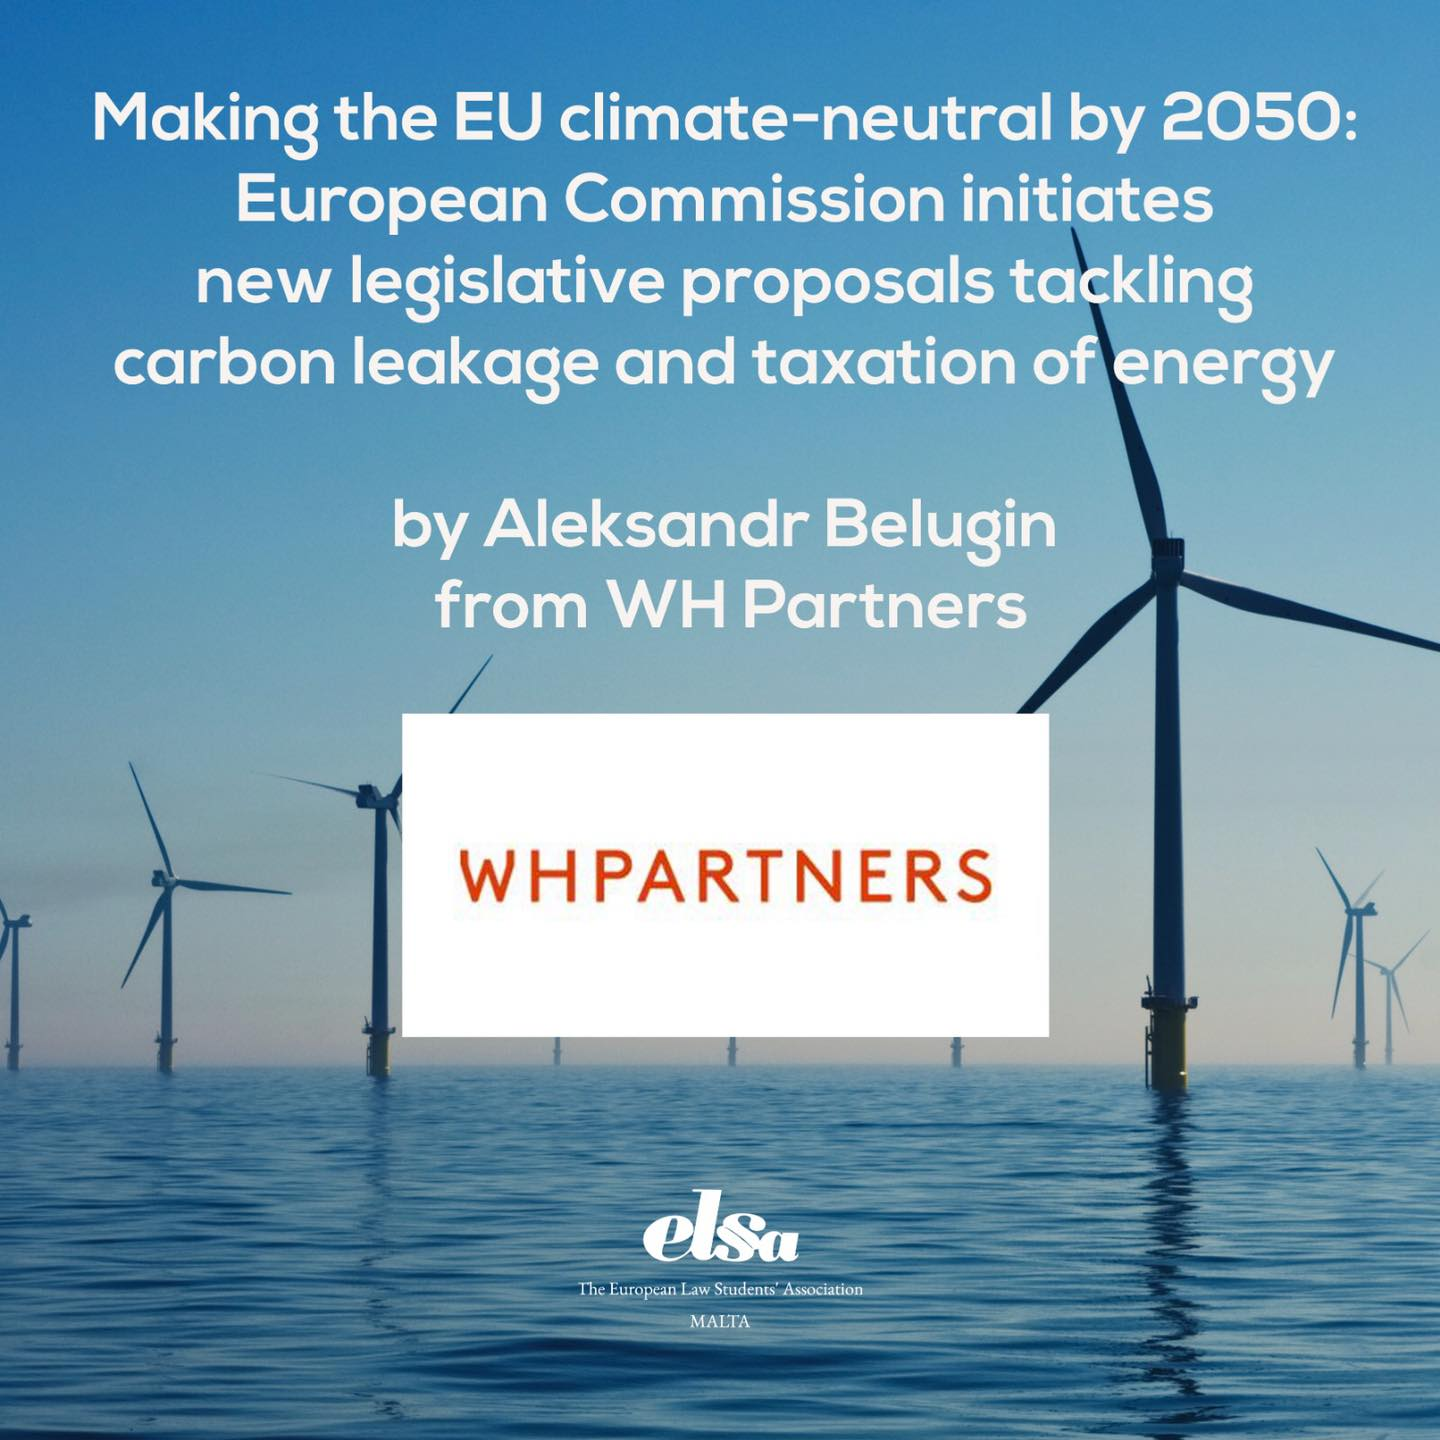 Making the EU climate-neutral by 2050: European Commission initiates new legislative proposals tackling carbon leakage and taxation of energy